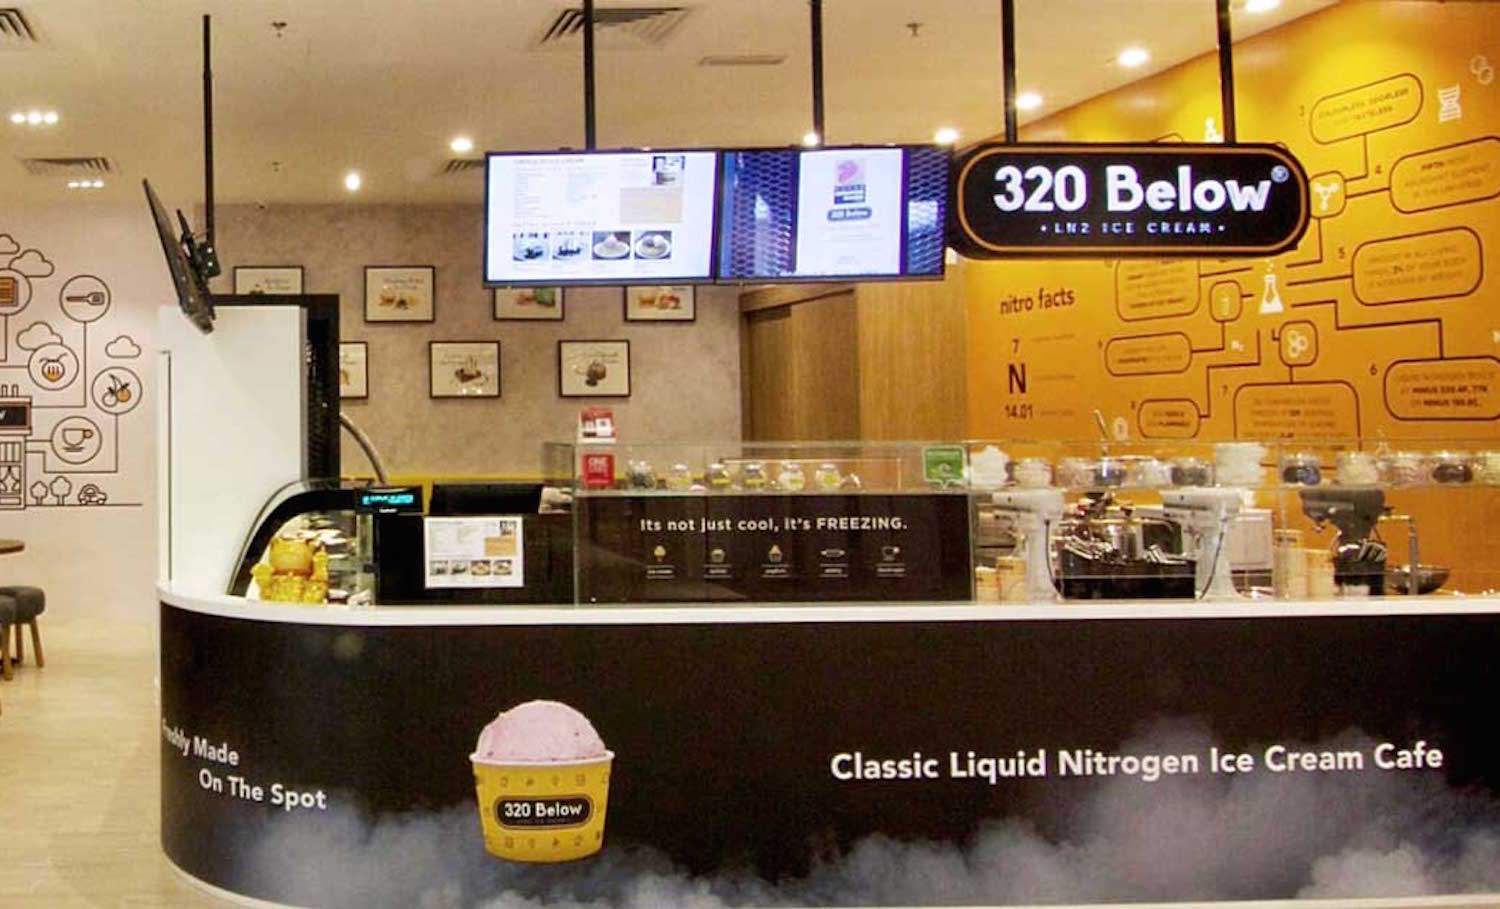 Franchise Discovery Day 320 Below Nitro Cream Cafe 20th Aug 2015 Singapore